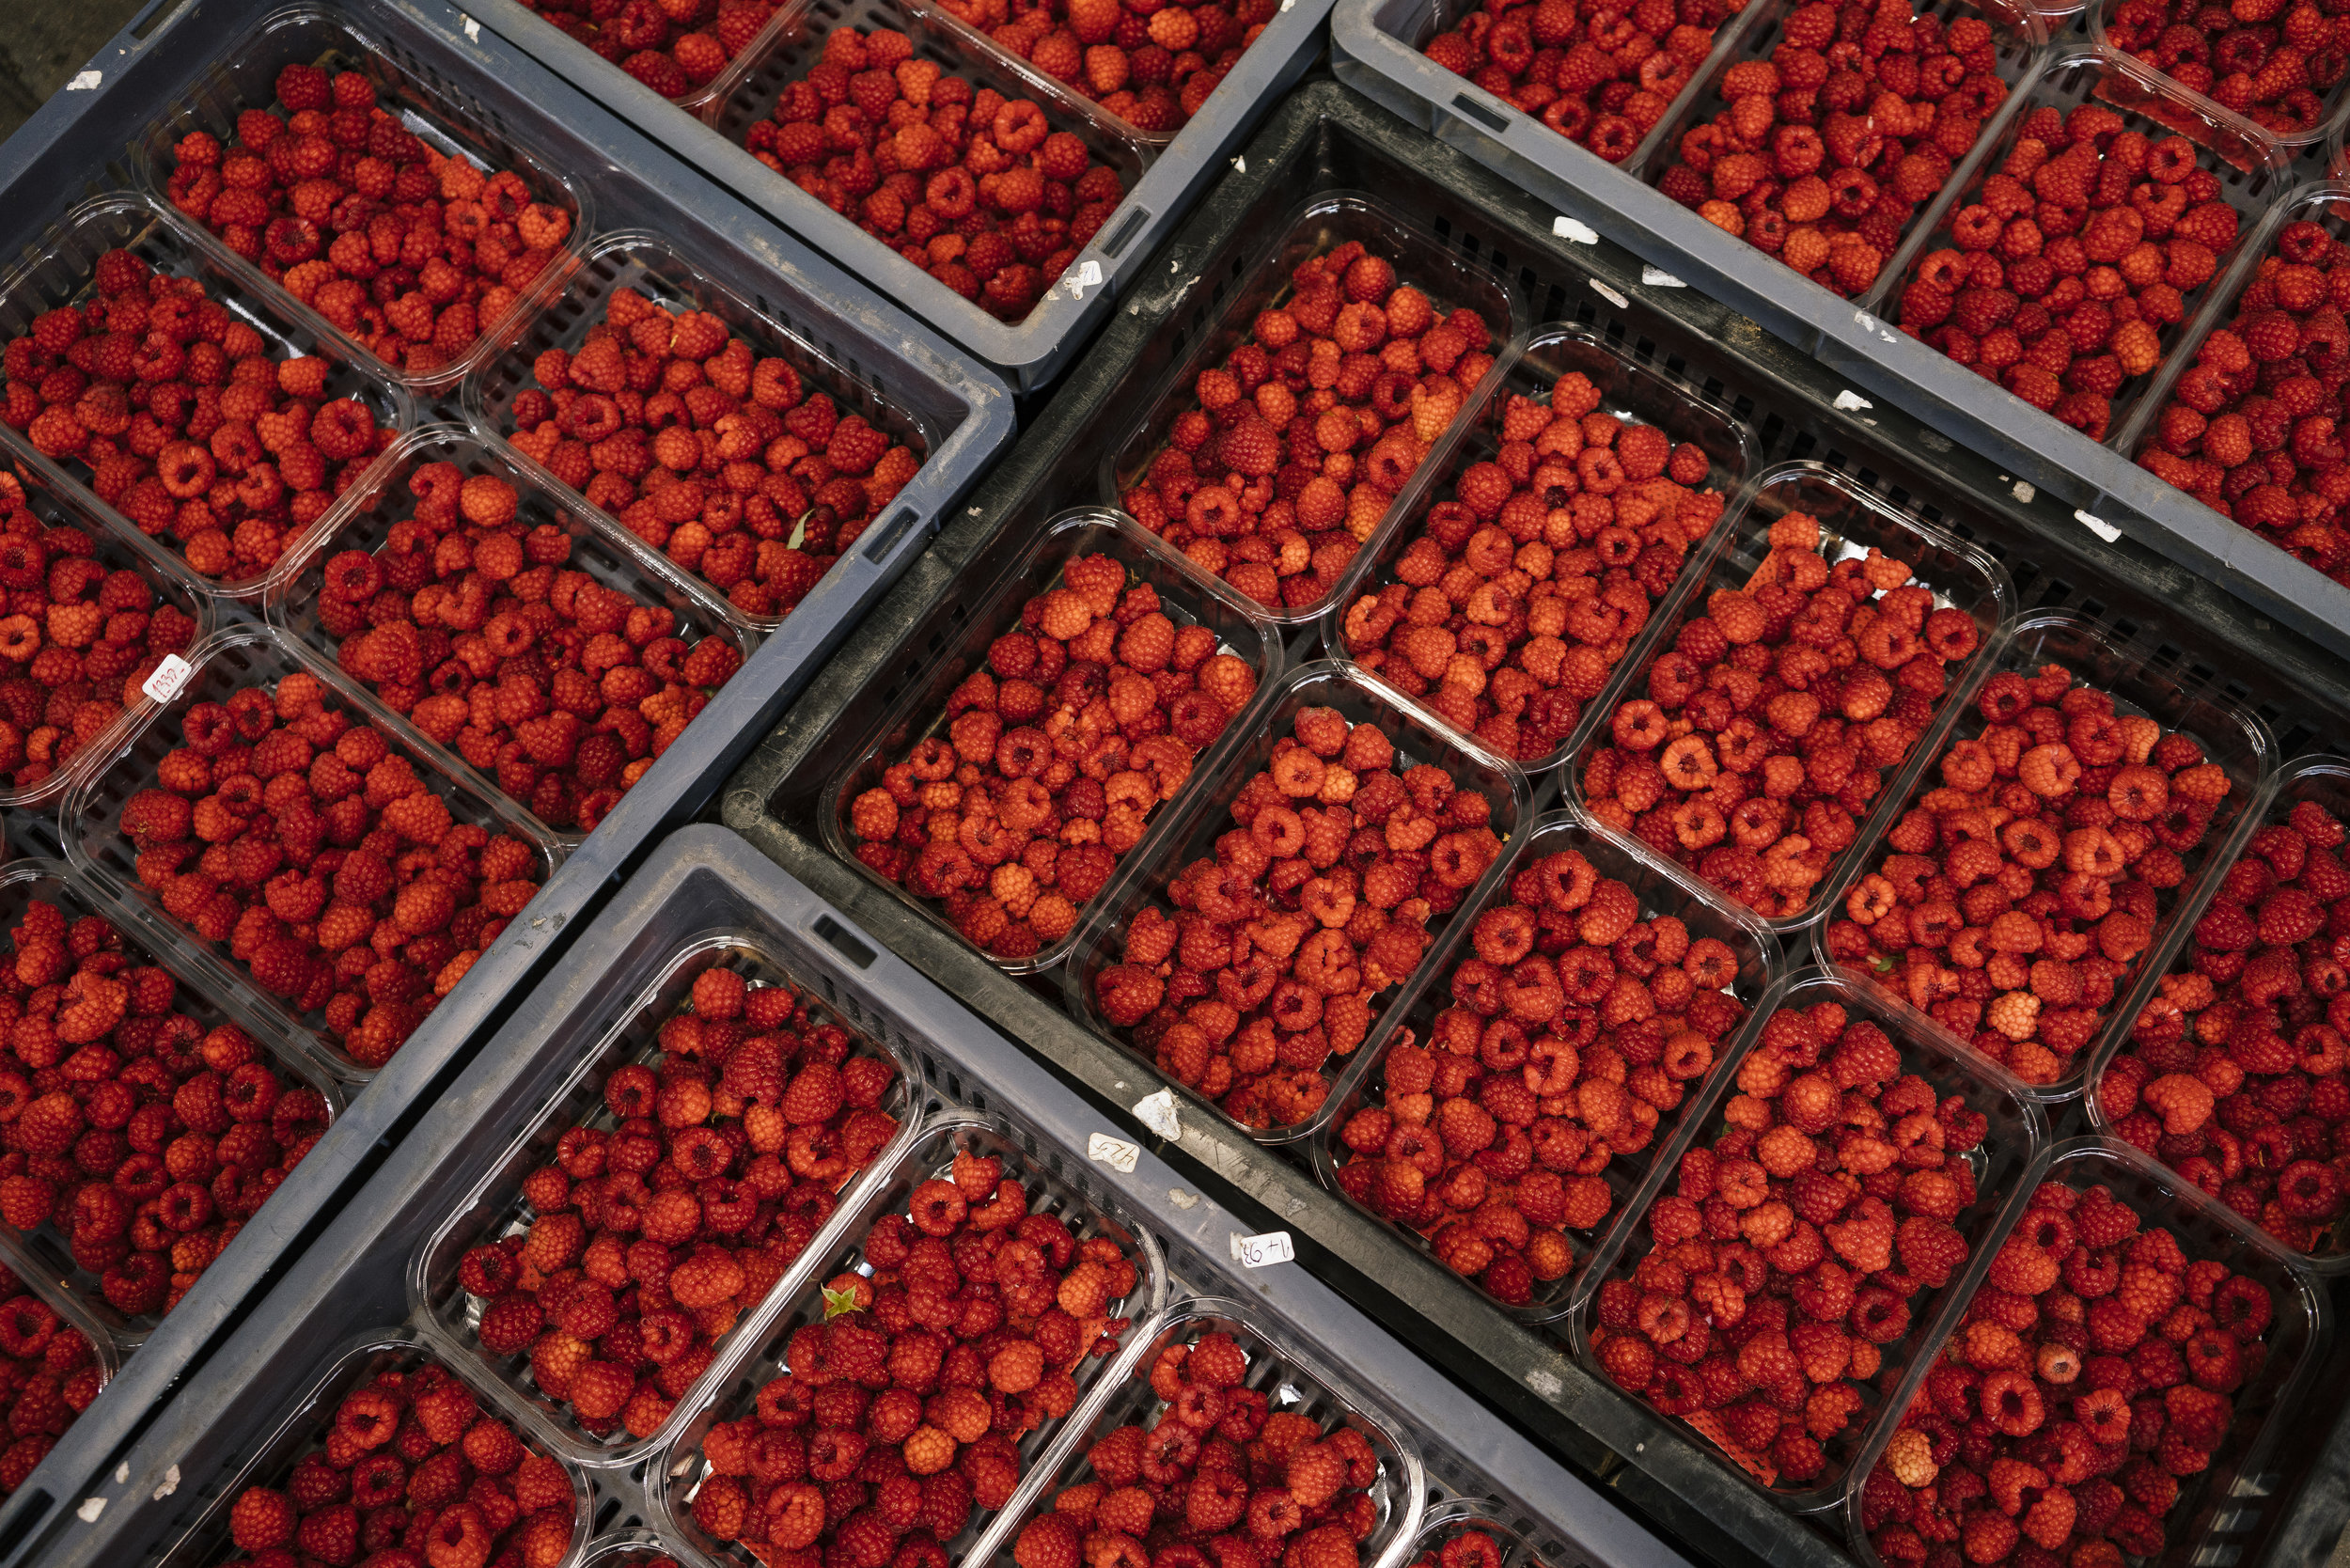 Punnets of raspberries in the pack house at Oakdene Farm, a fruit and vegetable farm owned by W.B. Chambers & Son in Langley, Kent, England, Thursday, Nov. 16, 2017. (David Azia for NBC News)